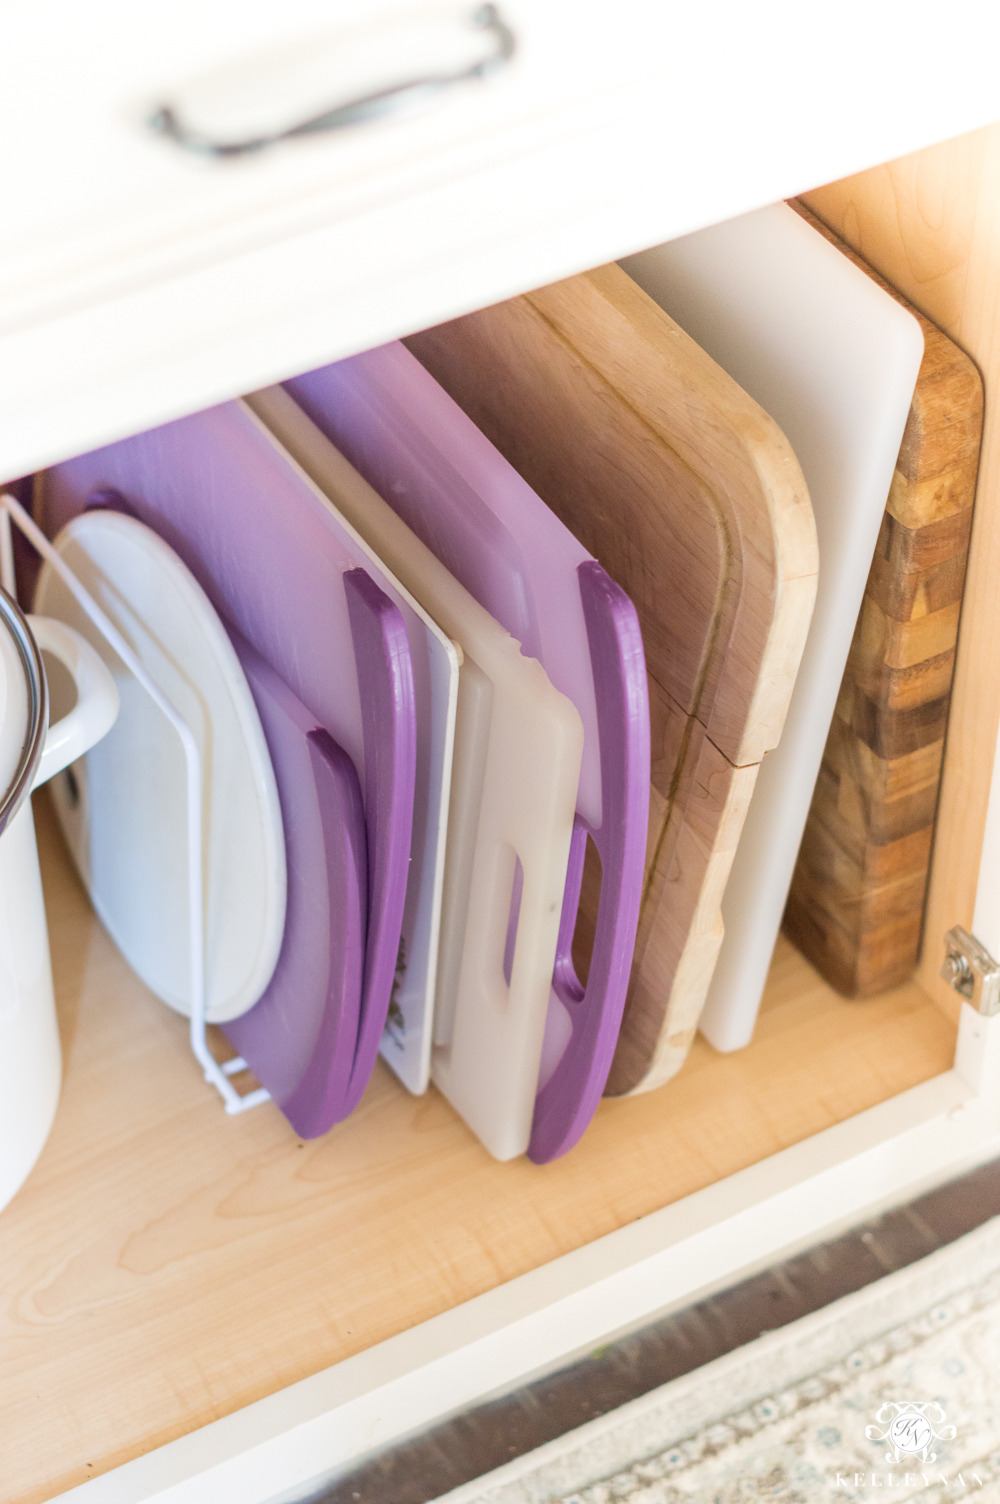 Cutting Board organization ideas in the kitchen cabinets